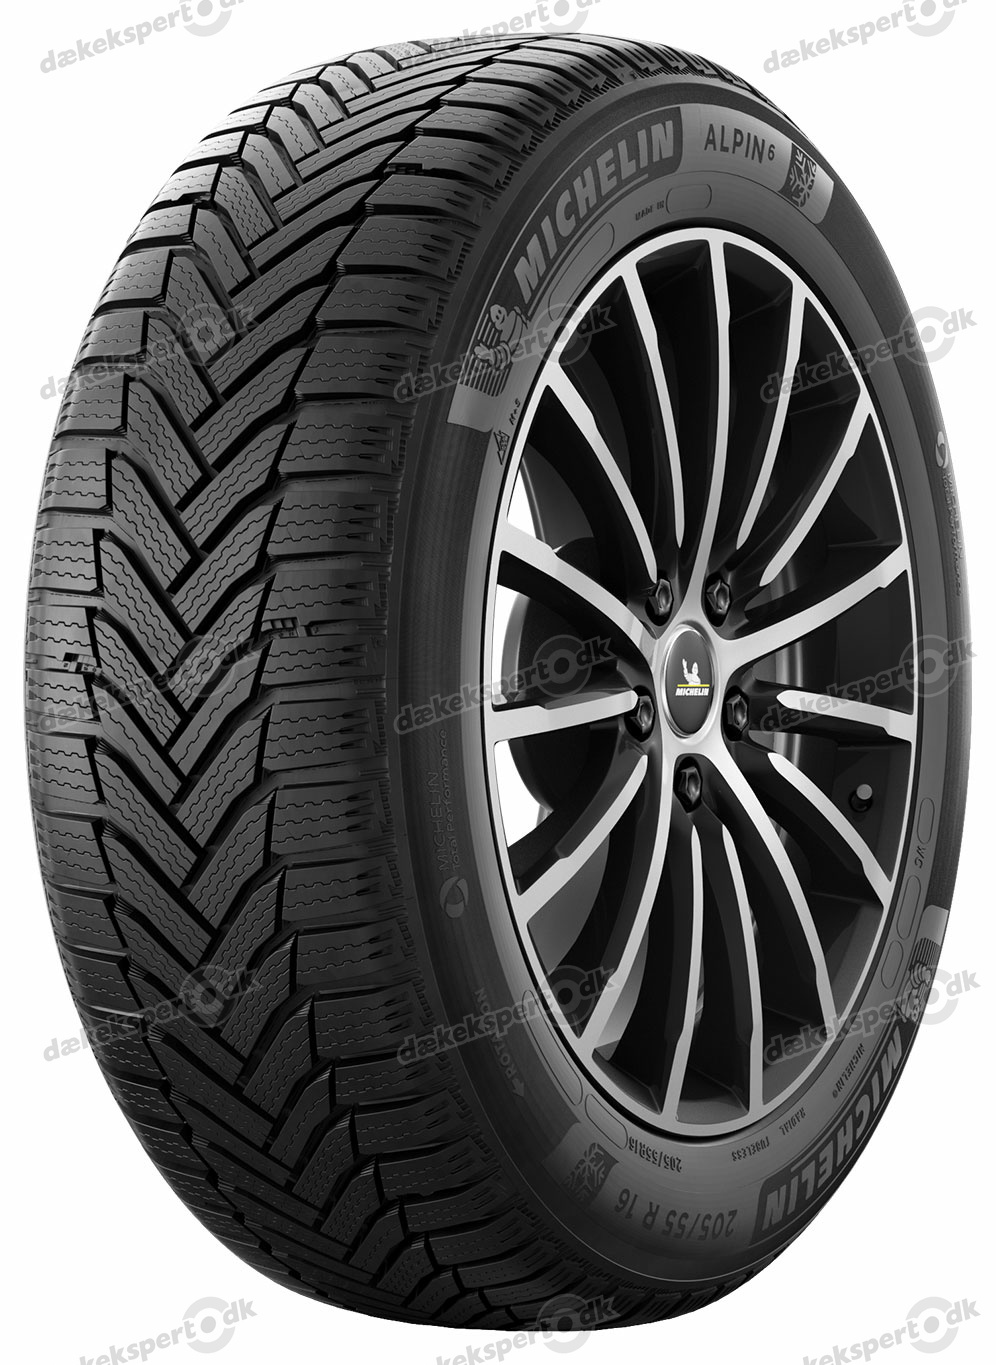 Tyres Dkekspertdk Brand Tyre Complete Wheels And Rims Michelin Fuel Filters We Found 21 Matching For Your Vehicle